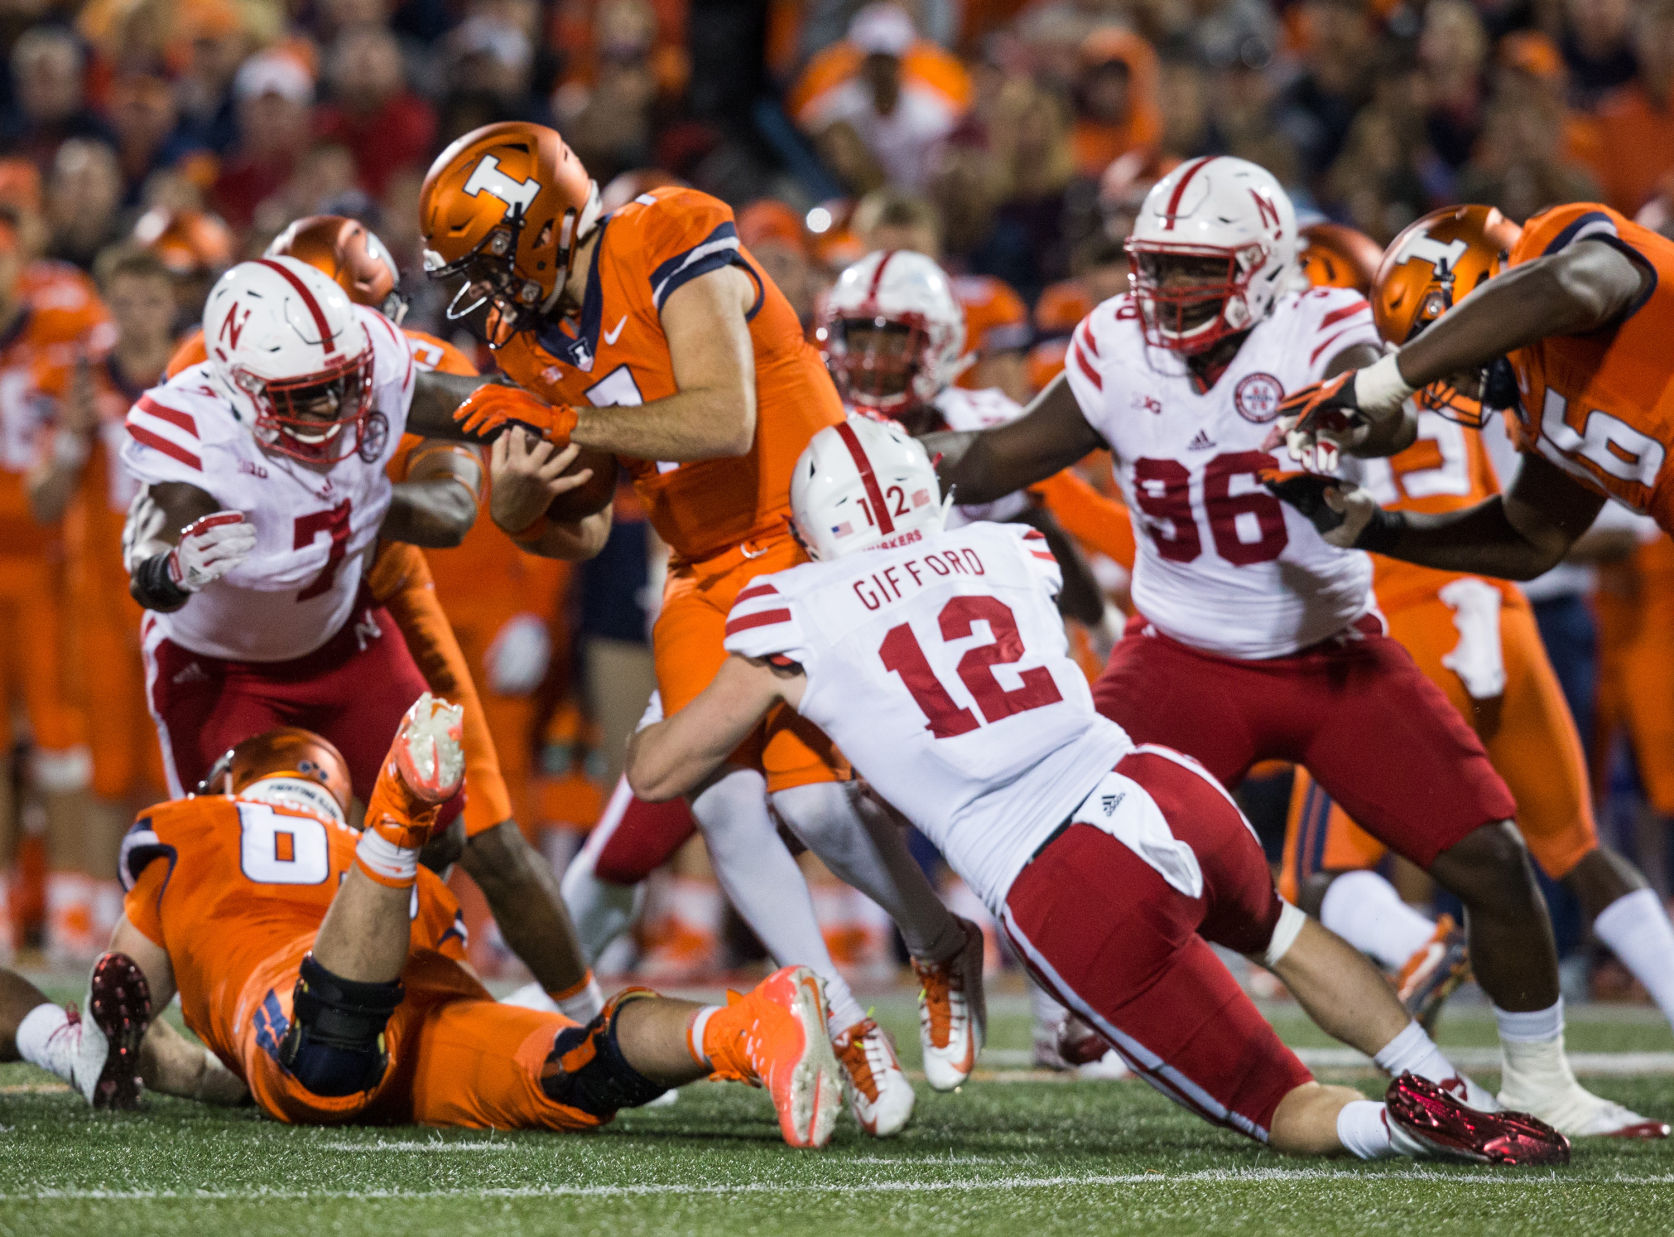 Huskers prepare for stingy Wisconsin defense